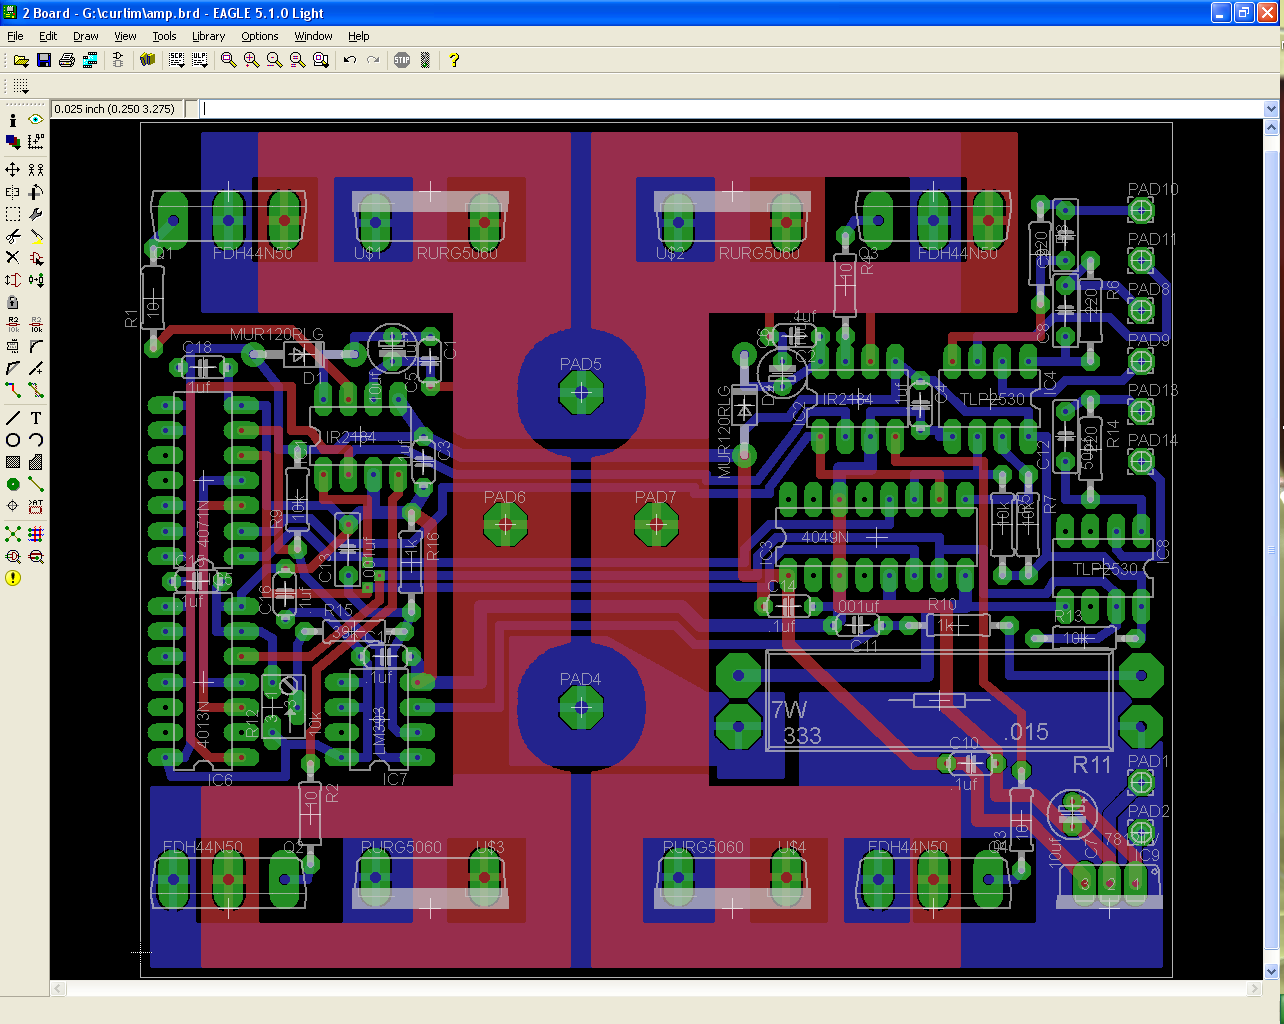 Large brushed servo setup on the cheap wip archive cnczone com largest forums for cnc professional and hobbyist alike